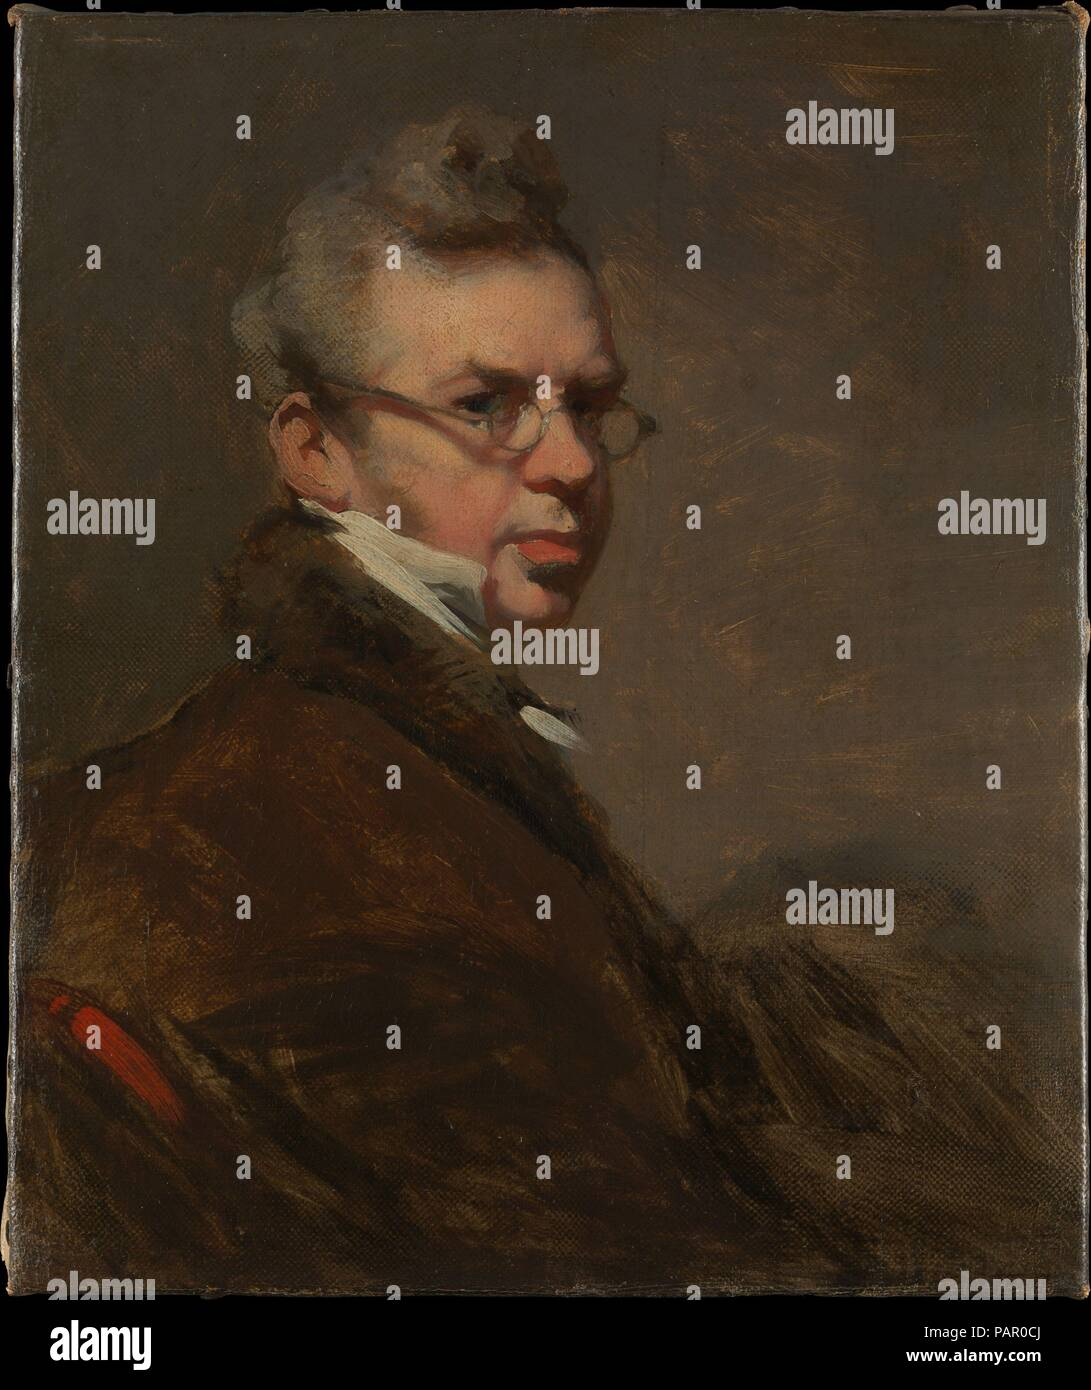 Self-Portrait. Artist: George Chinnery (British, London 1774-1852 Macau). Dimensions: 8 5/8 x 7 1/4 in. (21.9 x 18.4 cm). Date: 1825-28.  Chinnery painted more than a dozen self-portraits, the first of which he exhibited at the Royal Academy, London, in 1798; this is the most intimate and engaging of them all. An enigmatic figure, Chinnery was eccentric and volatile, with a tendency to hypochondria, a raconteur and wit with a gift for friendship. This likeness was painted in China and must date to the years 1825-28. Its first owner was the United States consul Benjamin Chew Wilcox, a businessm - Stock Image